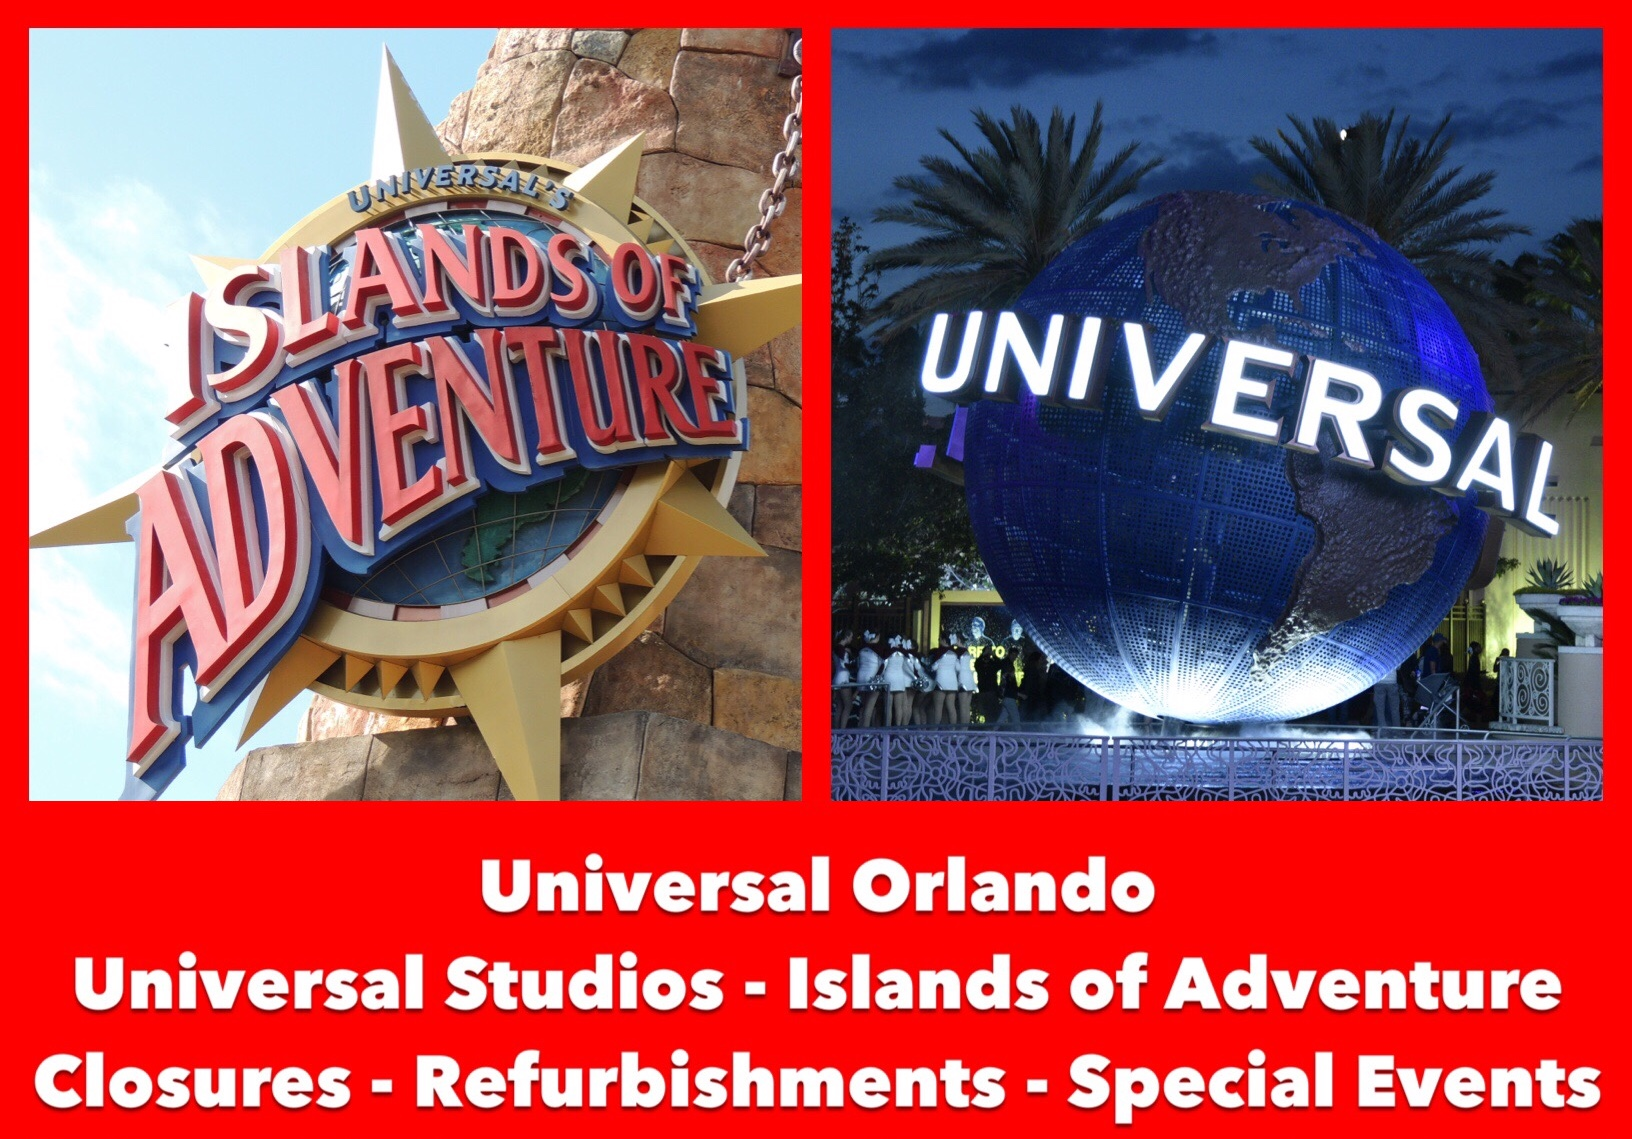 Universal Orlando Ride Closures, Refurbishments, and Special Events Information; includes Universal Studios Florida, Islands of Adventure, Volcano Bay and the Universal Orlando Resort hotels.